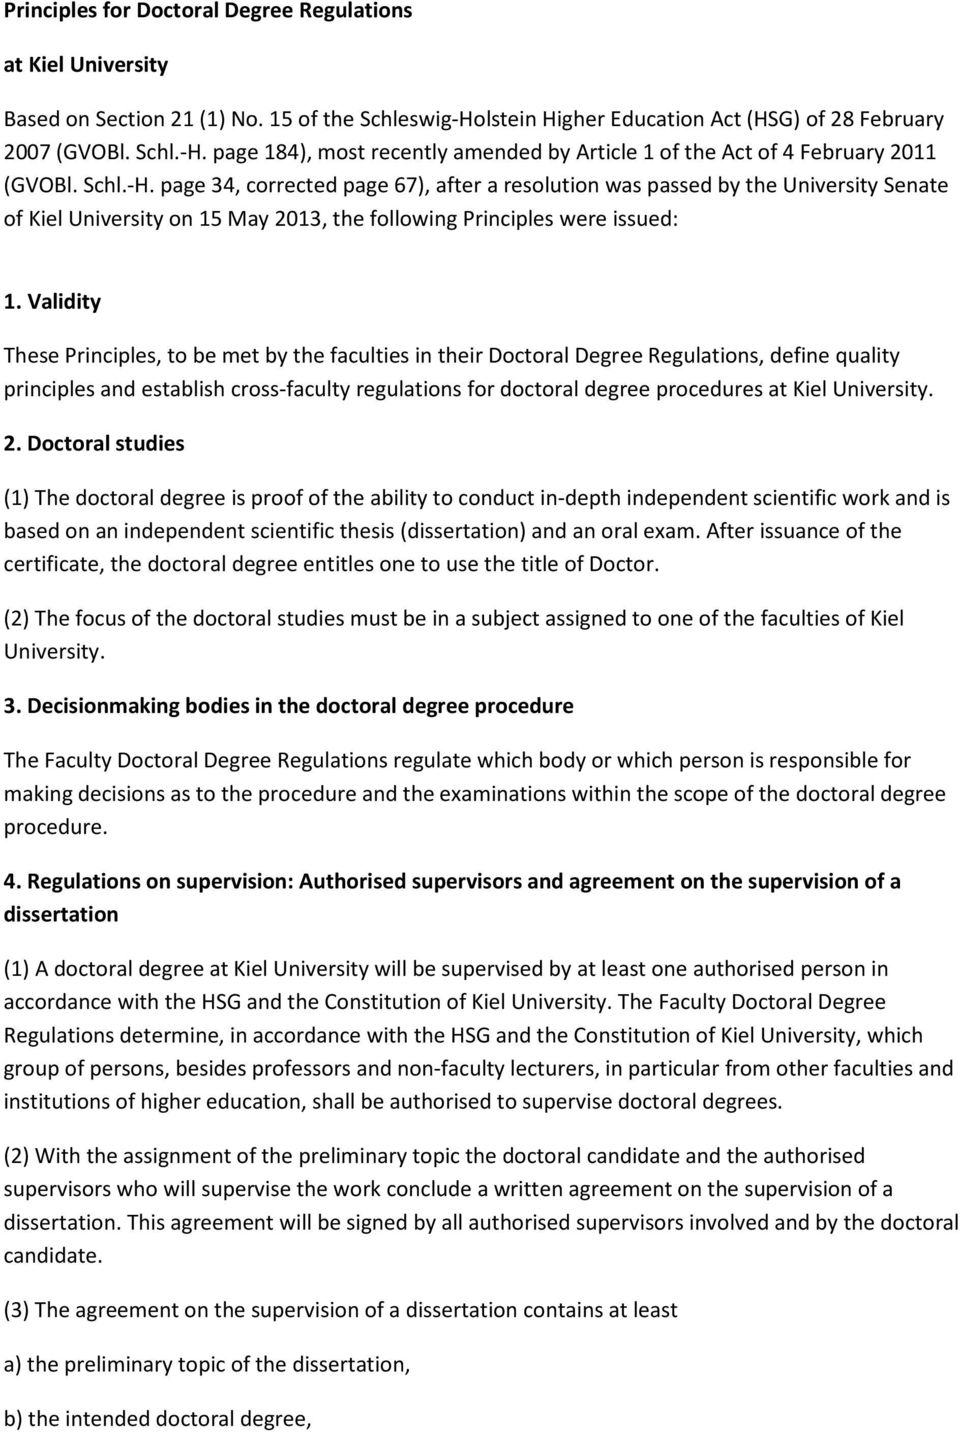 Validity These Principles, to be met by the faculties in their Doctoral Degree Regulations, define quality principles and establish cross-faculty regulations for doctoral degree procedures at Kiel